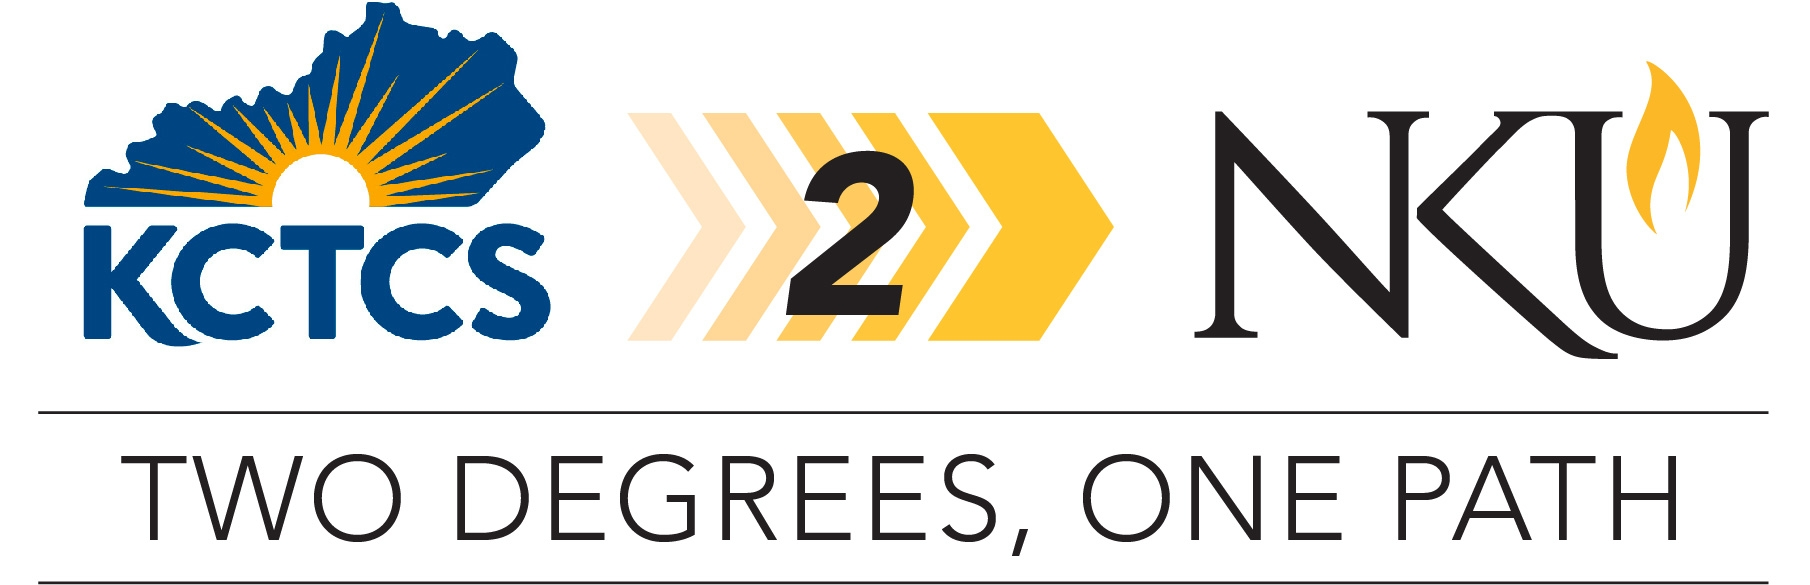 kctcs 2 NKU - two degrees, one path